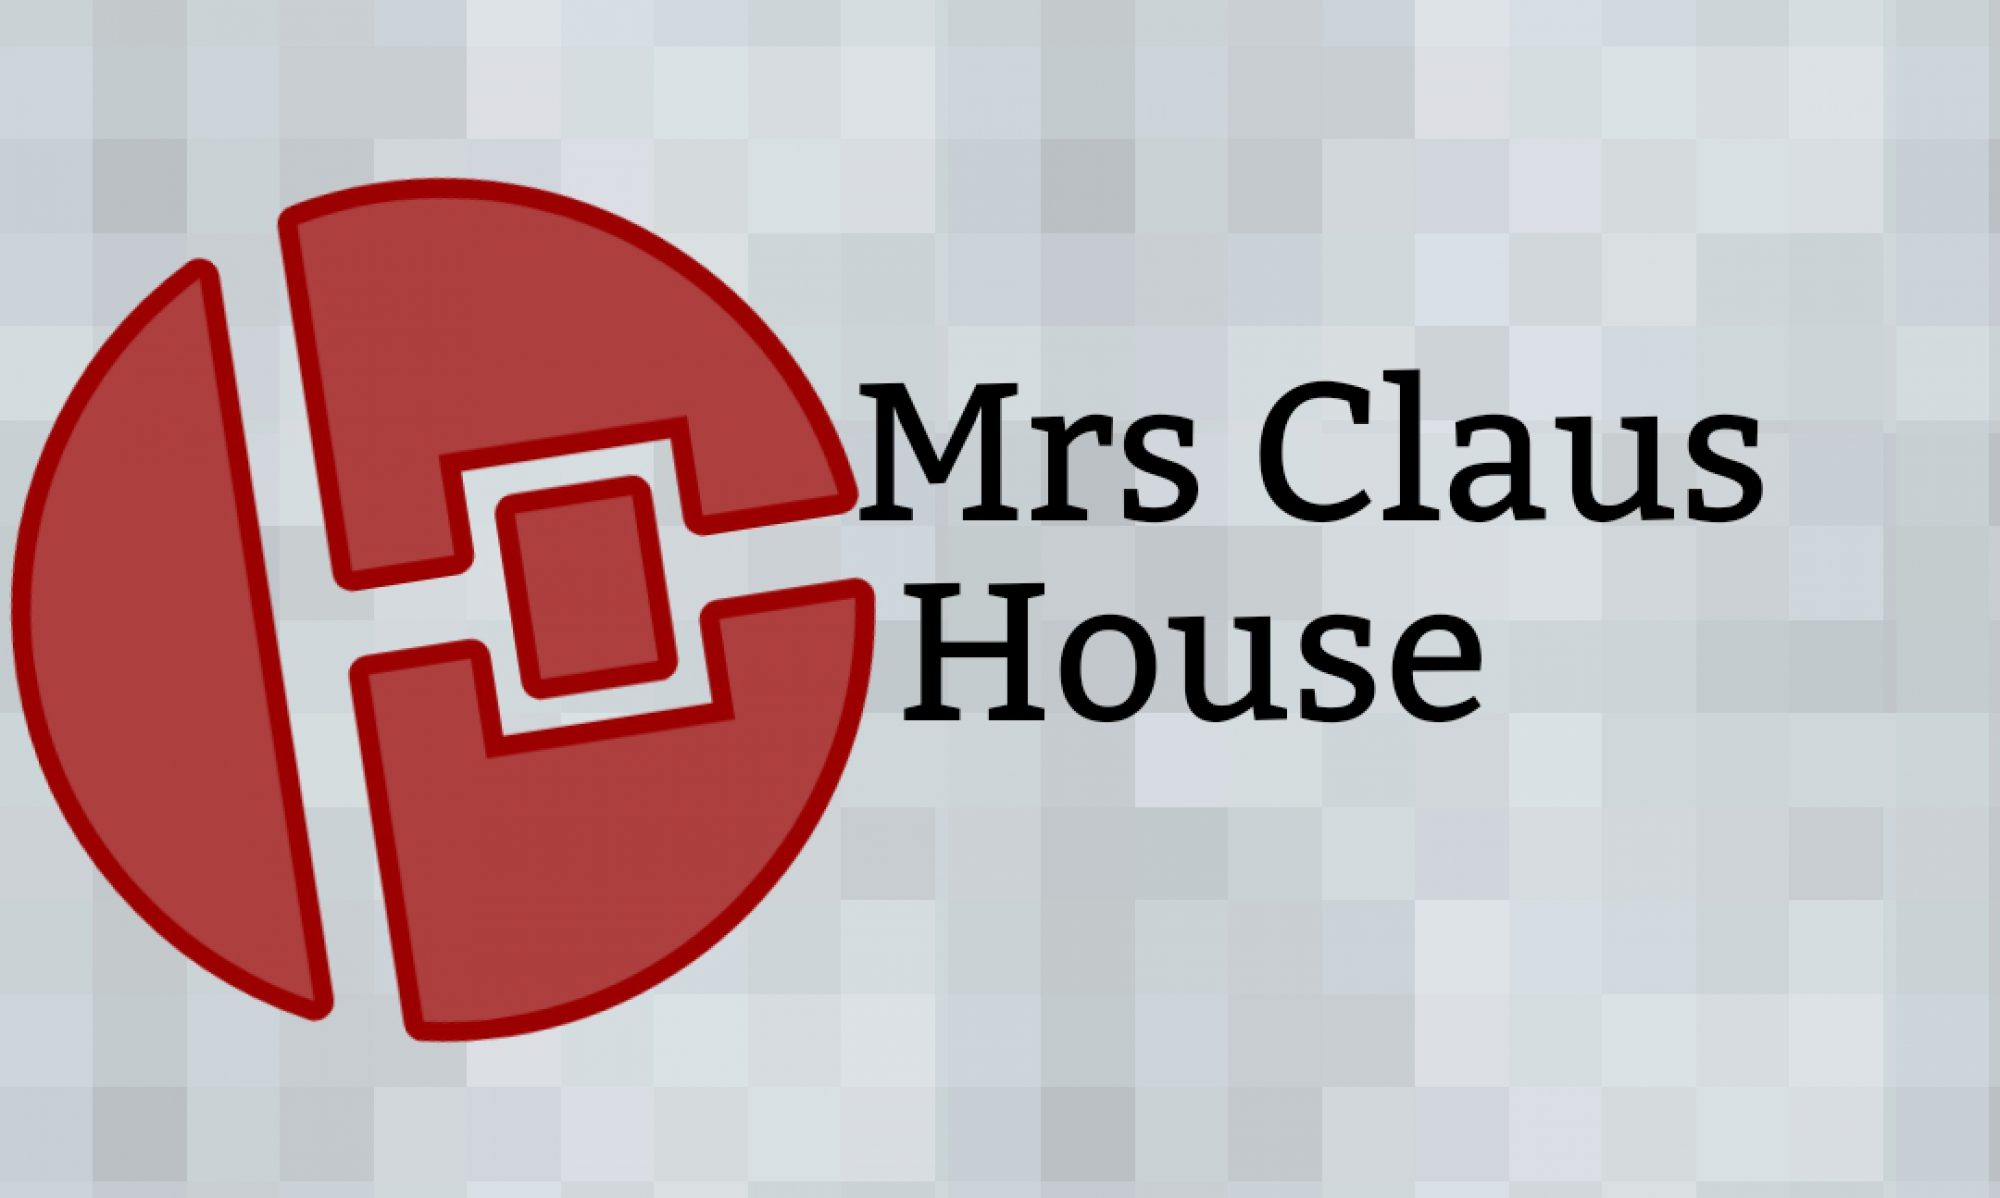 Mrs Claus House